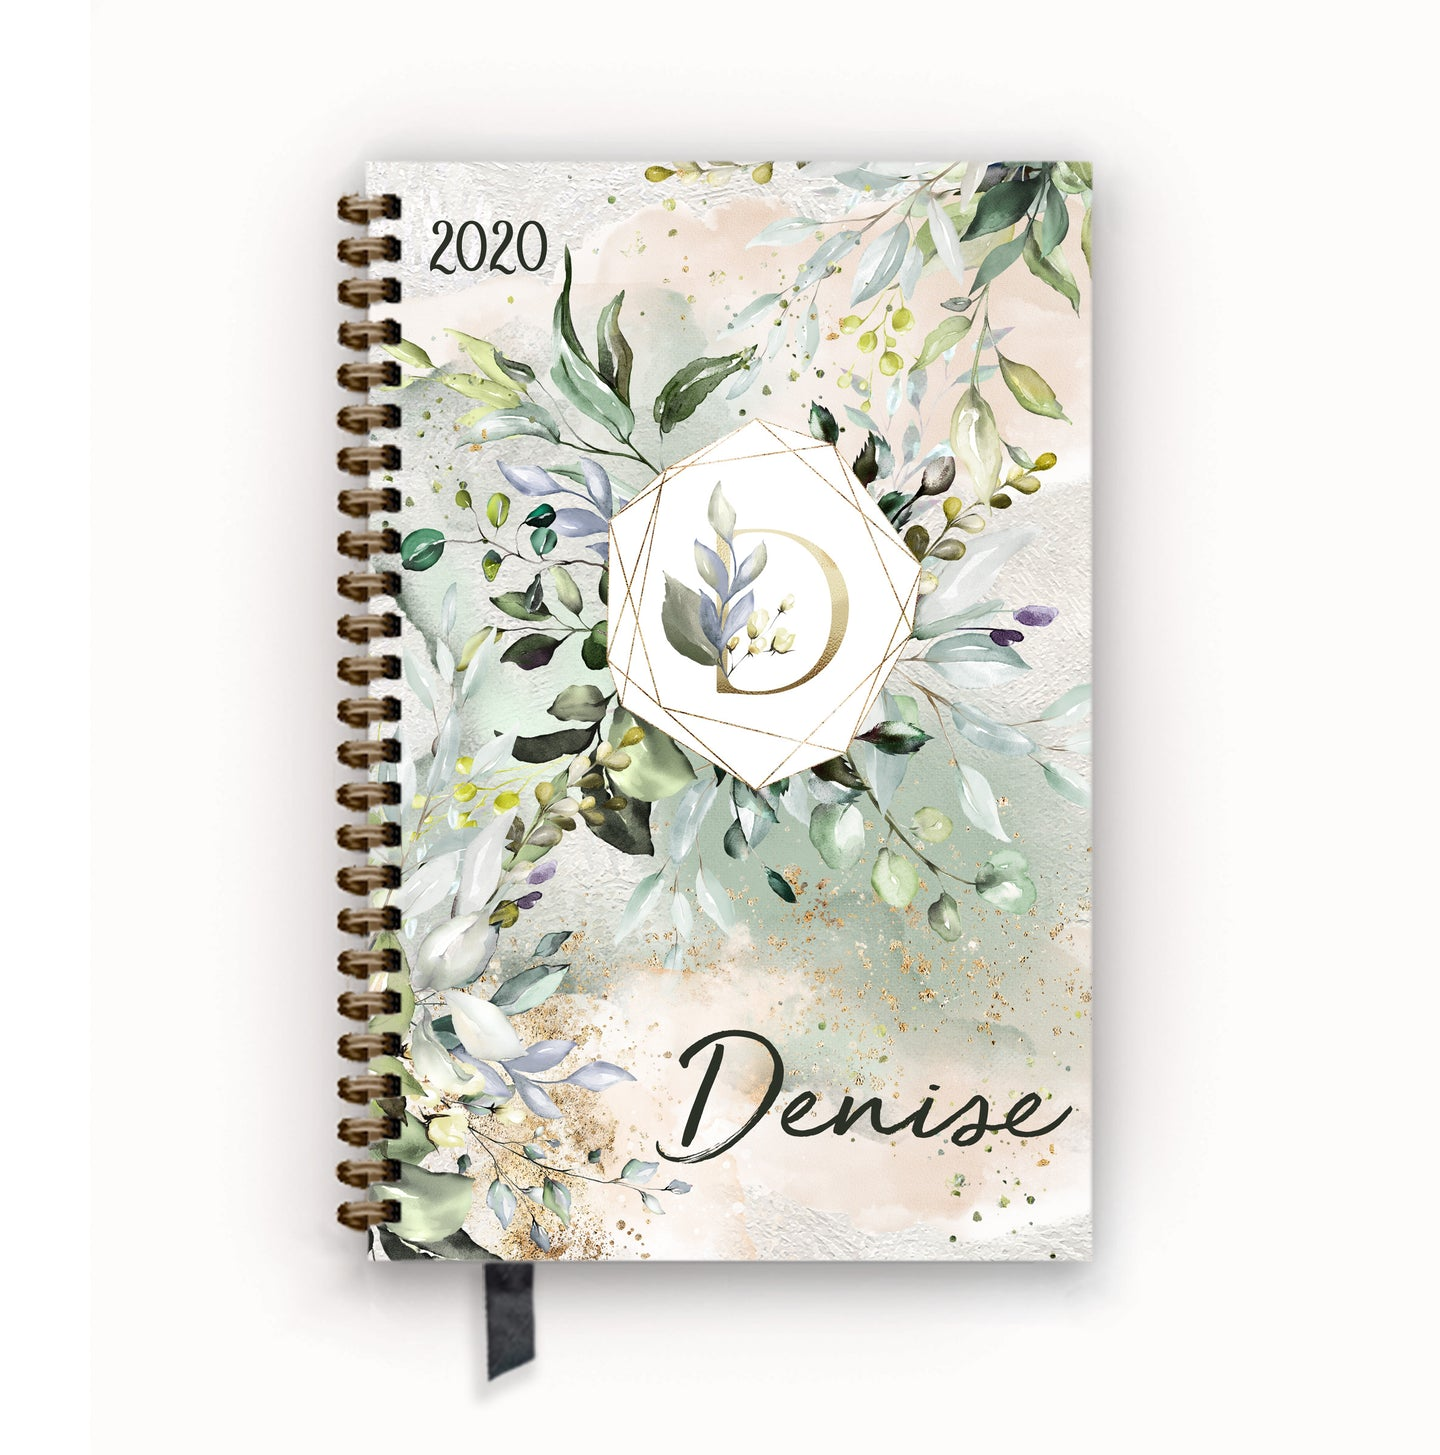 2020 FlexPad Personalized Planner Herbal Aloe Green Floral Monogram